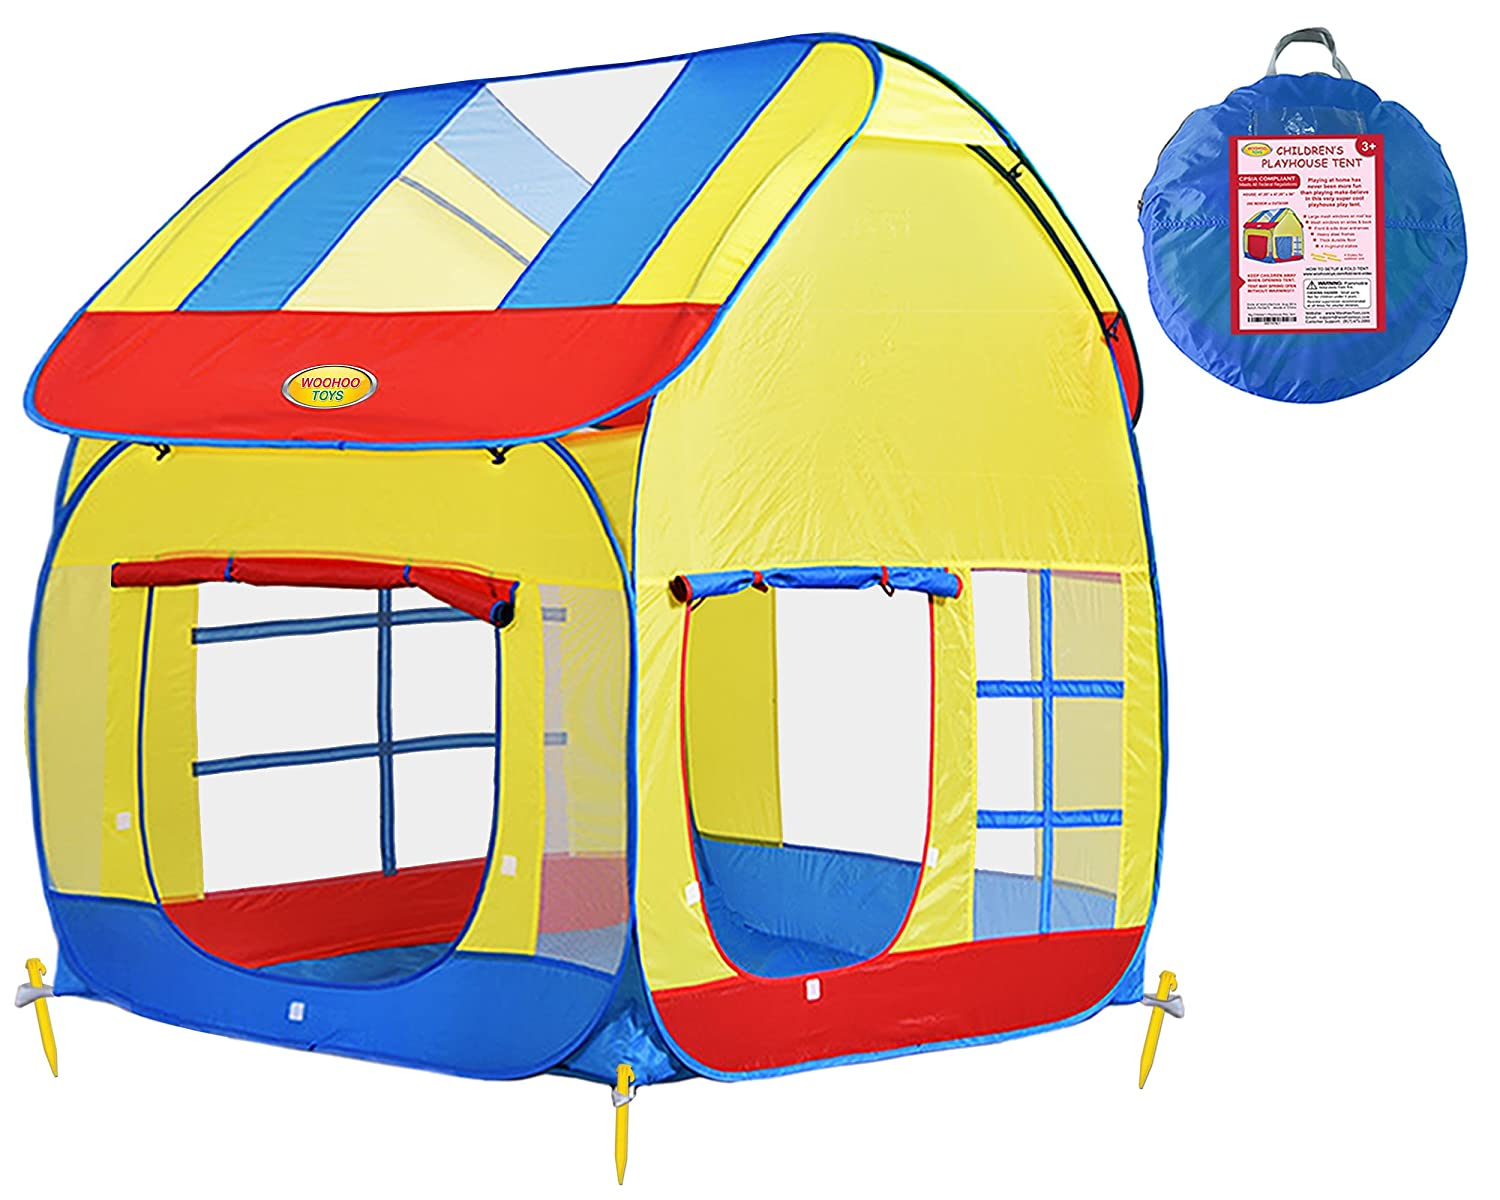 Amazon.com Big Children Playhouse Pop-Up Play Tent for Boys or Girls to Use Indoor or Outdoor with Stakes for Kids to Play House or Role Play with Friends ...  sc 1 st  Amazon.com & Amazon.com: Big Children Playhouse Pop-Up Play Tent for Boys or ...